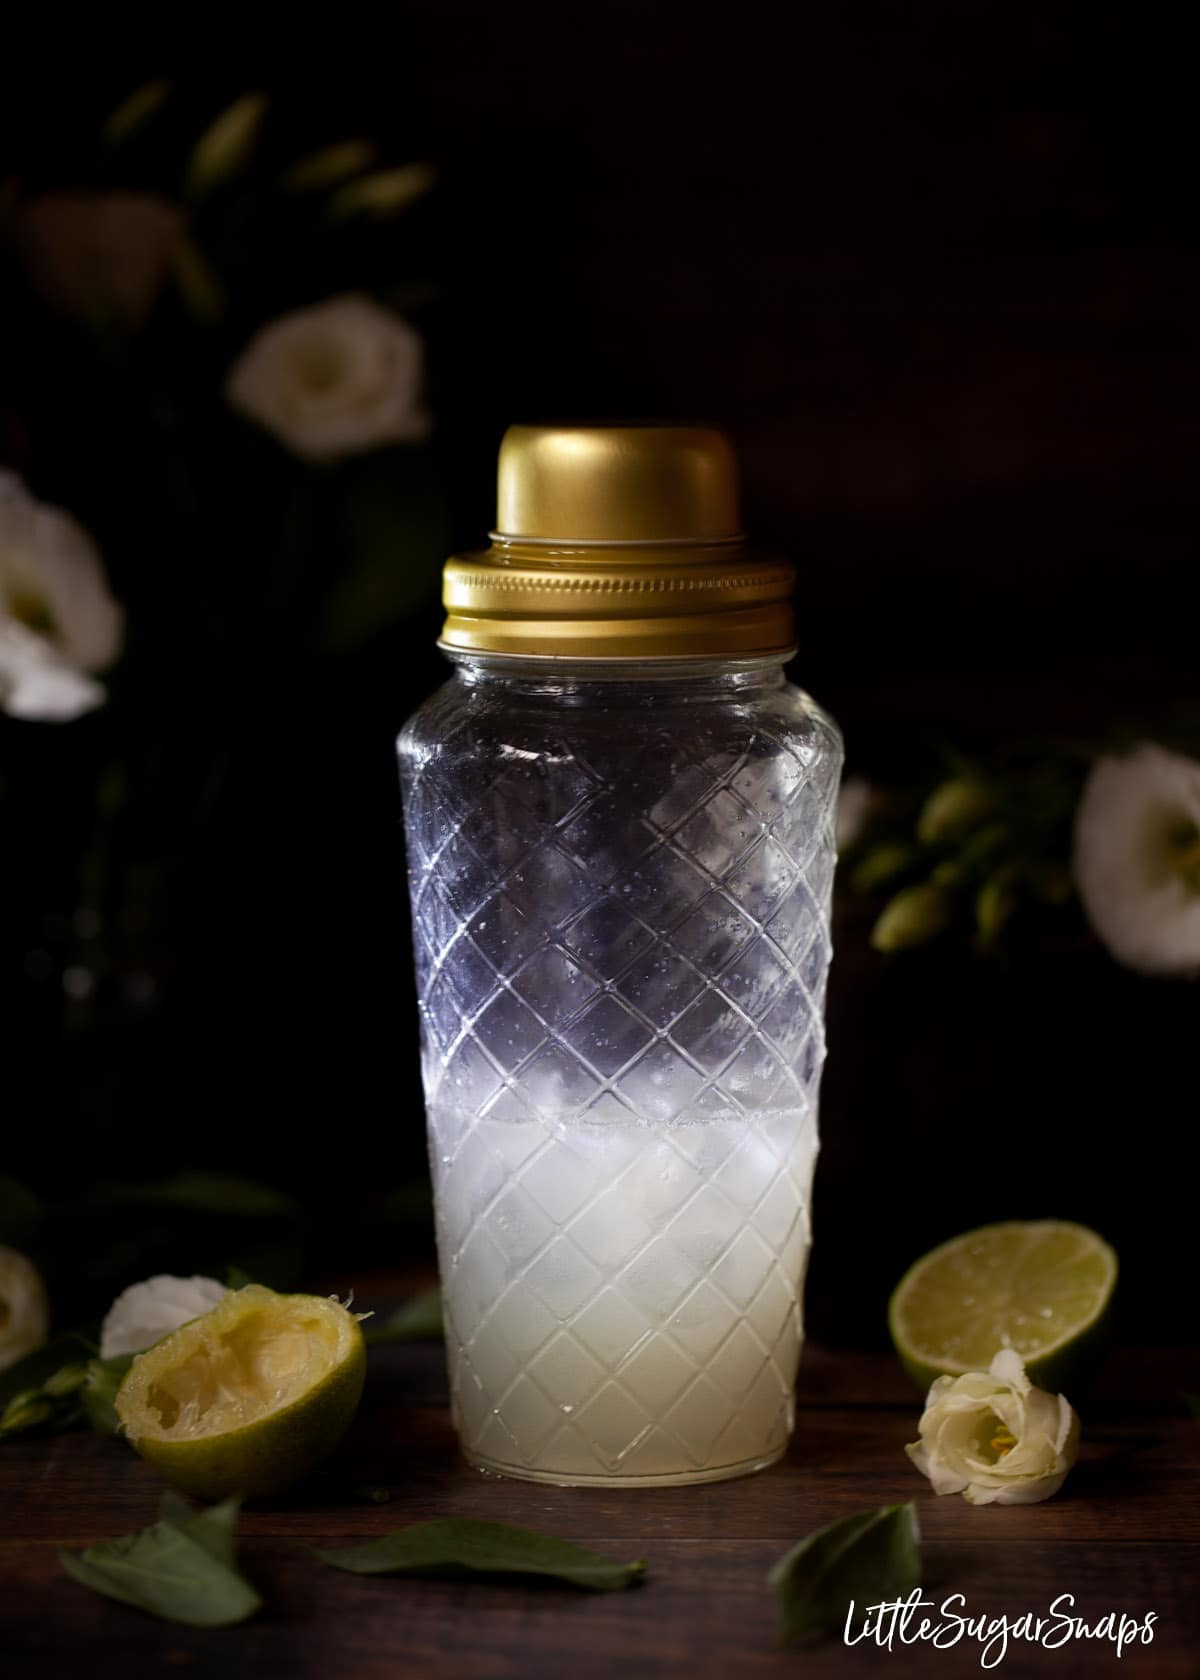 ingredients in a glass shaker with lime halves next to it and white flowers in the background